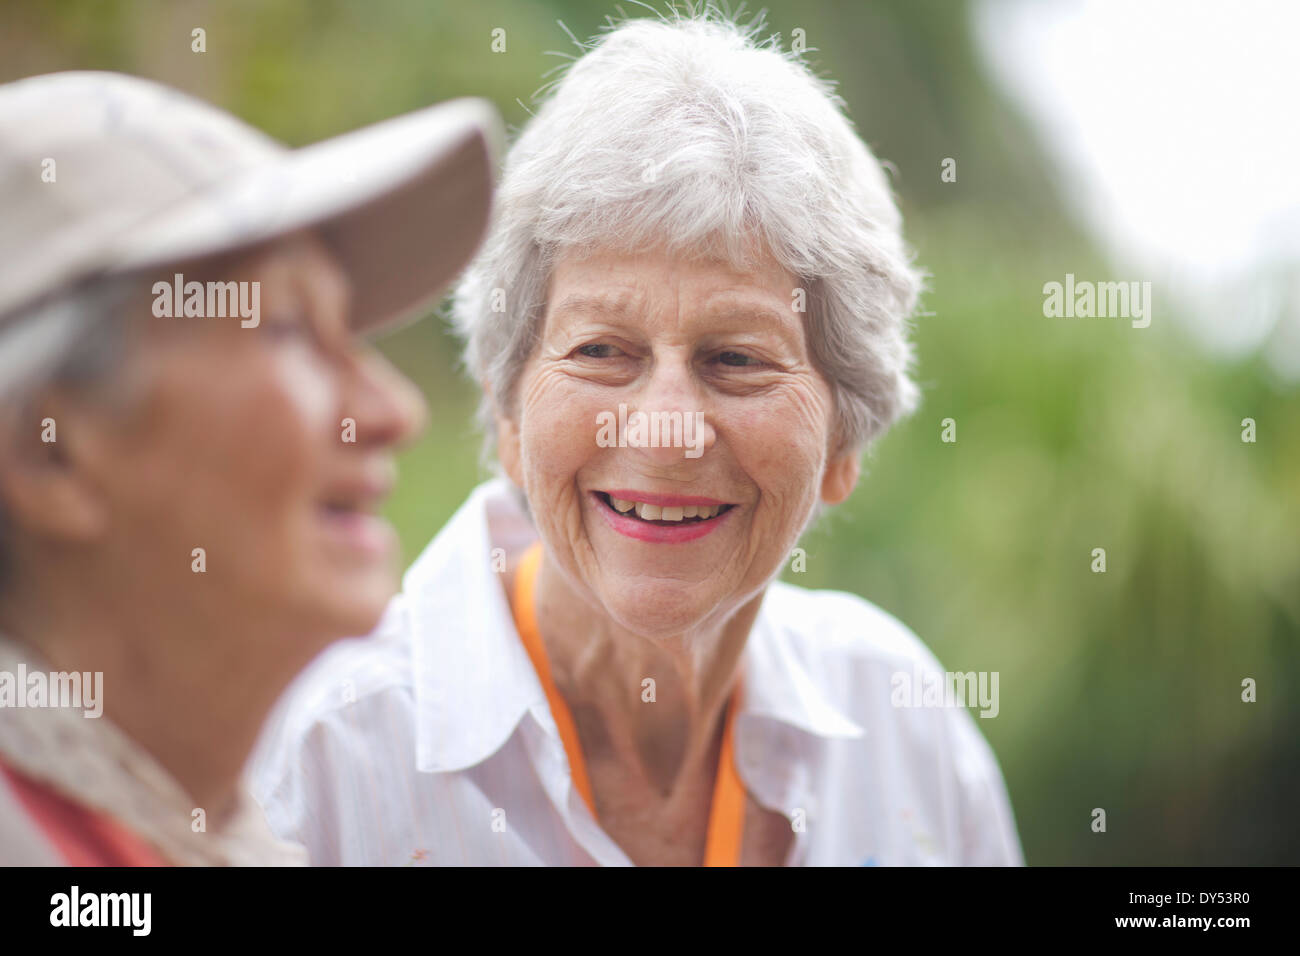 Where To Meet Seniors In Vancouver Without Payment